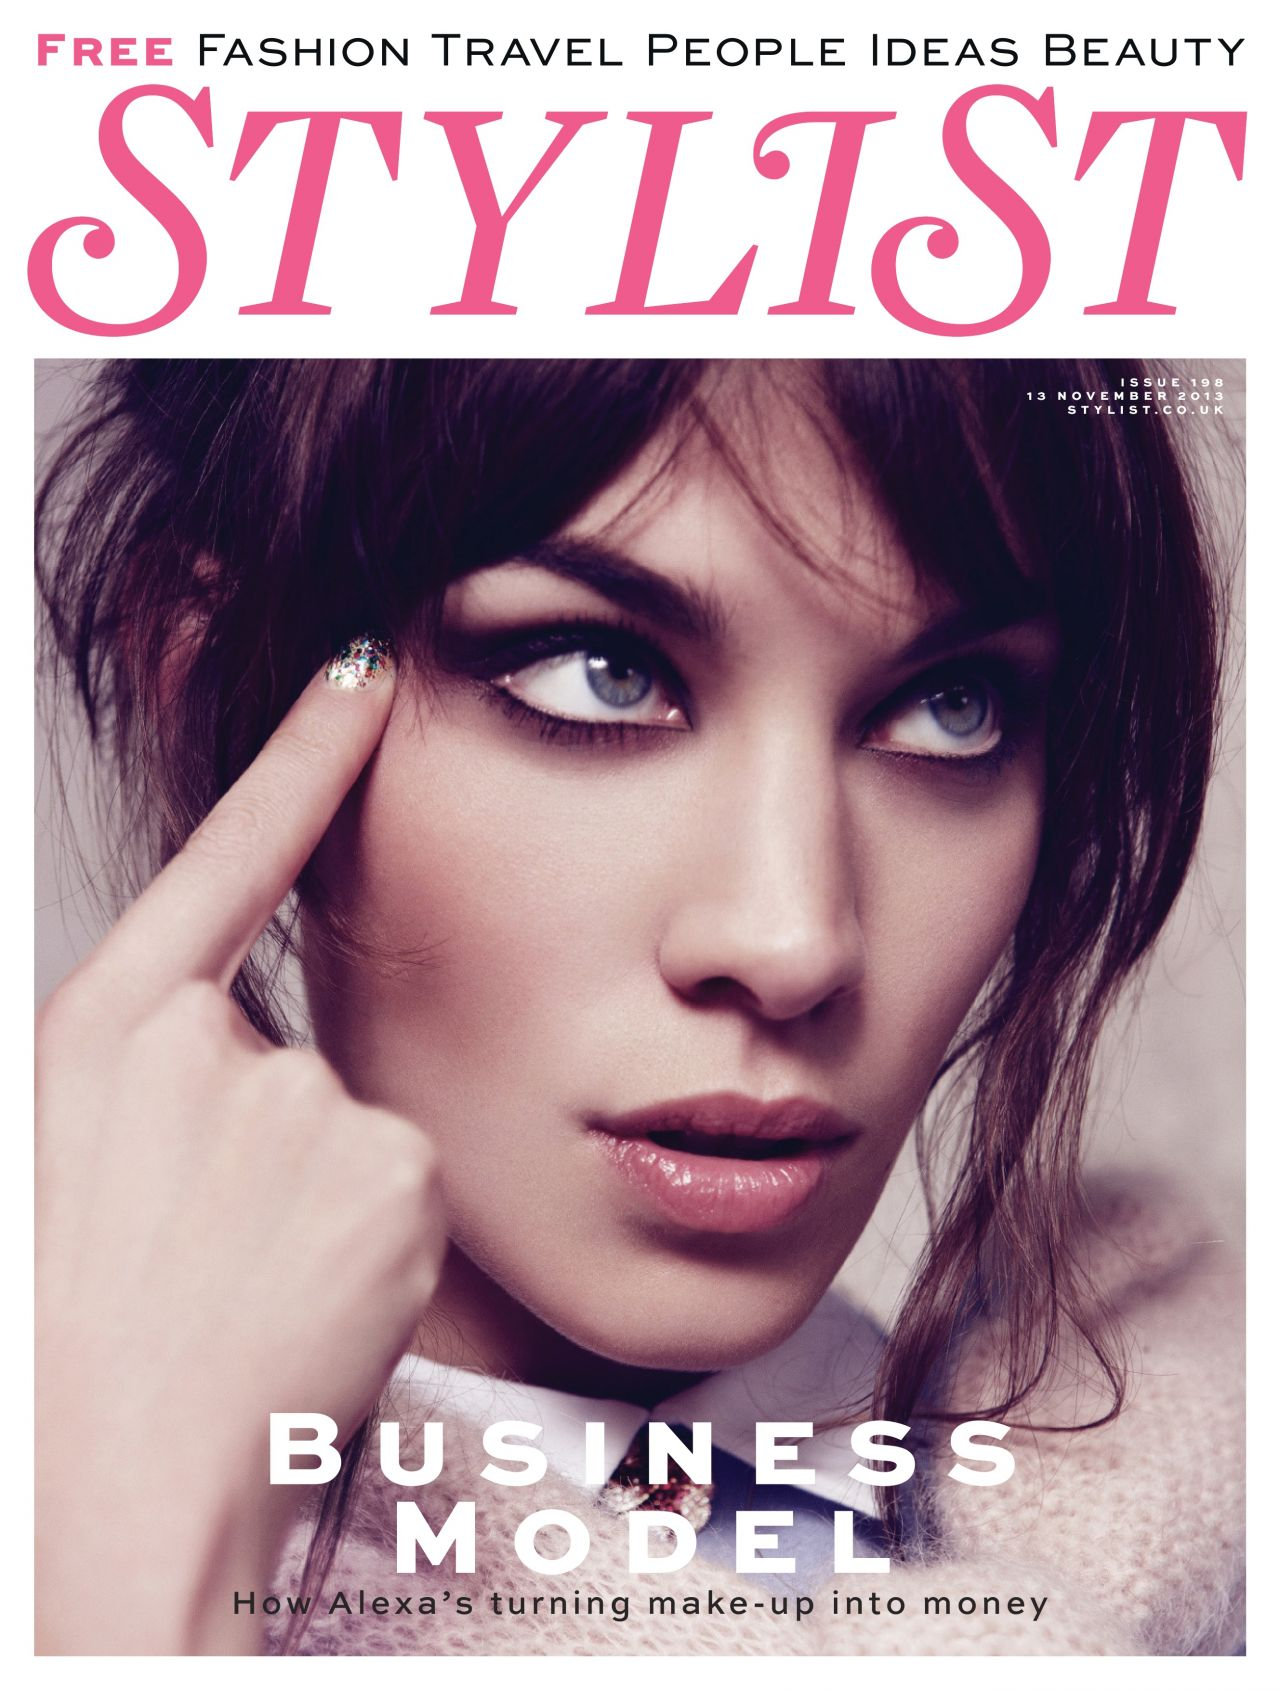 Alexa Chung - STYLIST Magazine - November 2013 Issue